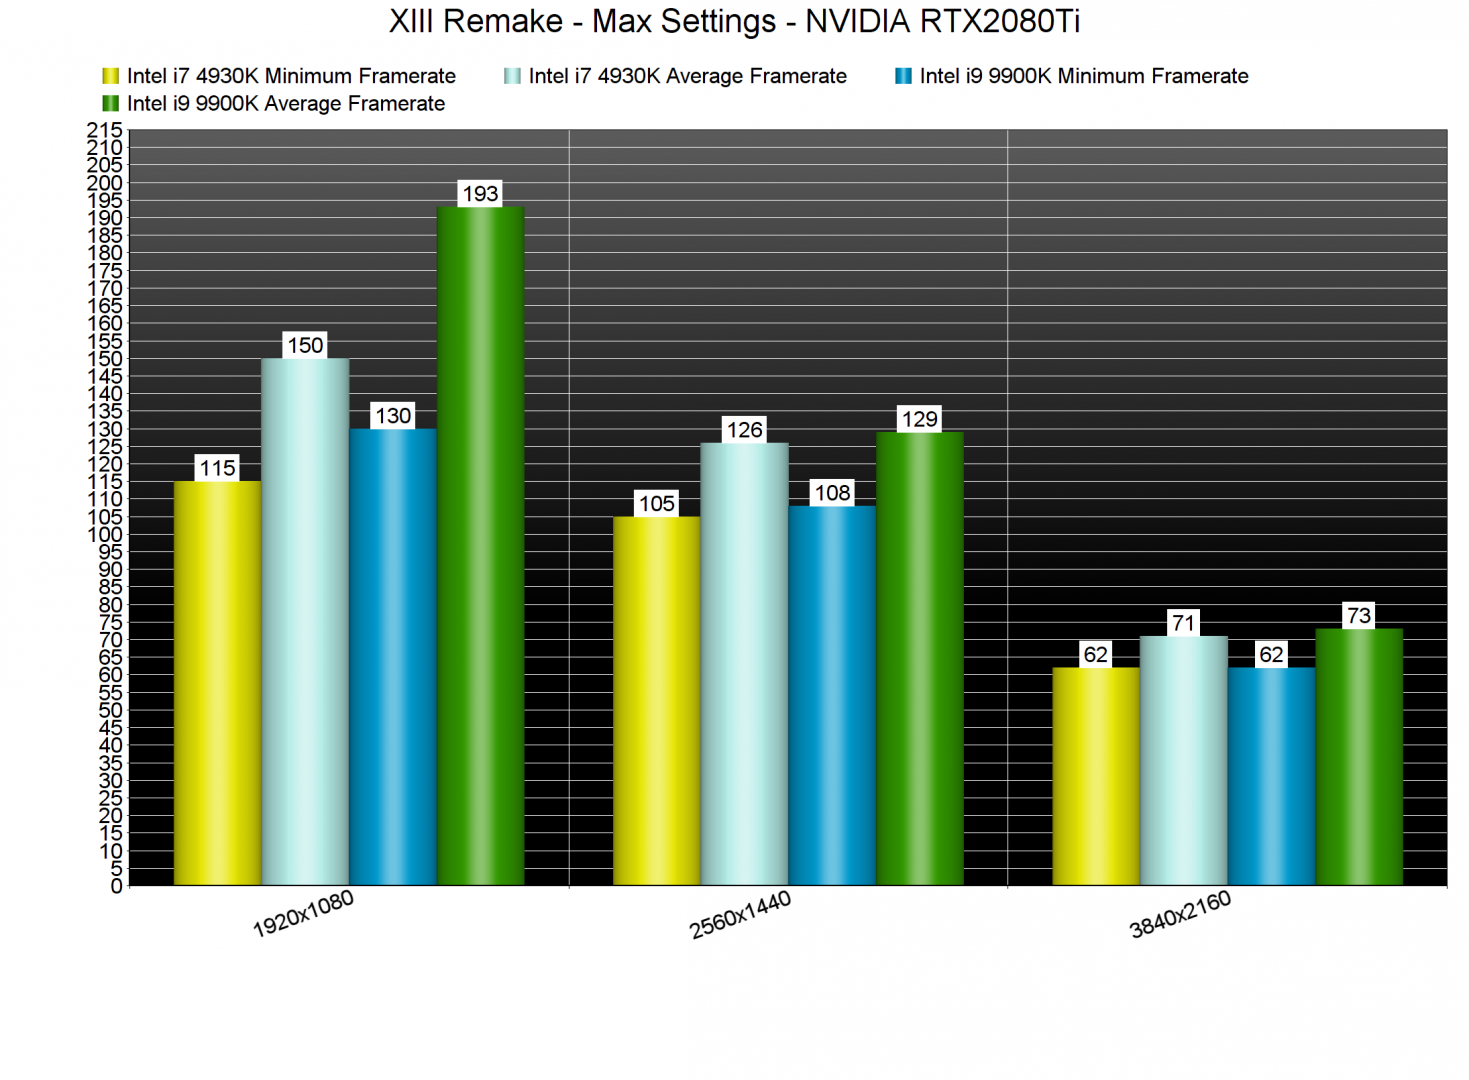 XIII Remake CPU benchmarks-2